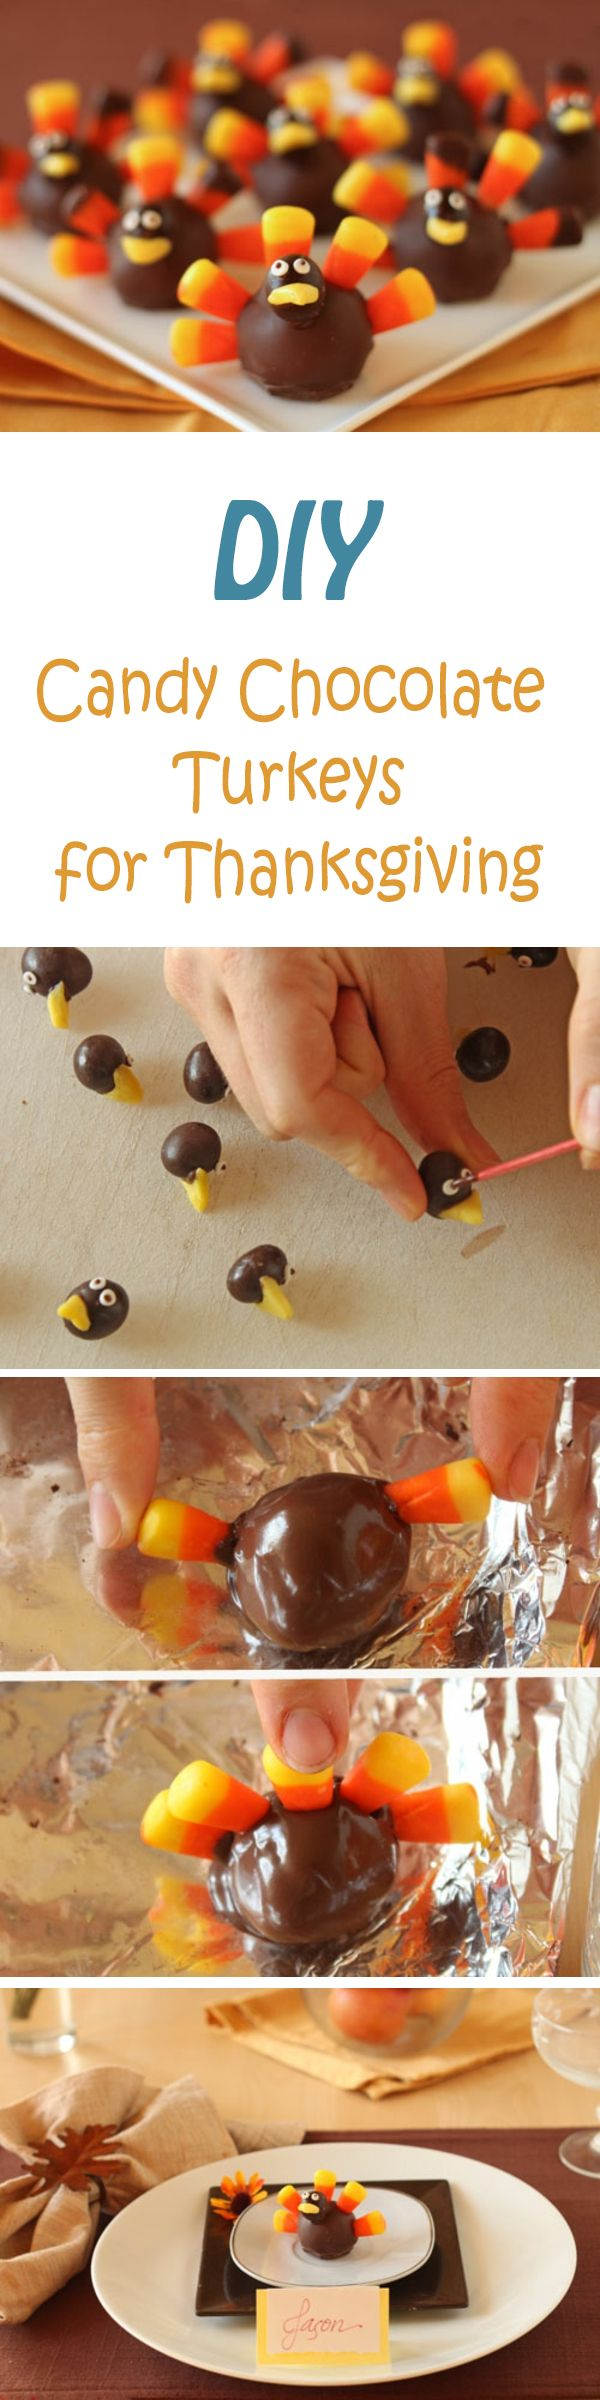 DIY Candy Chocolate Turkeys for Thanksgiving